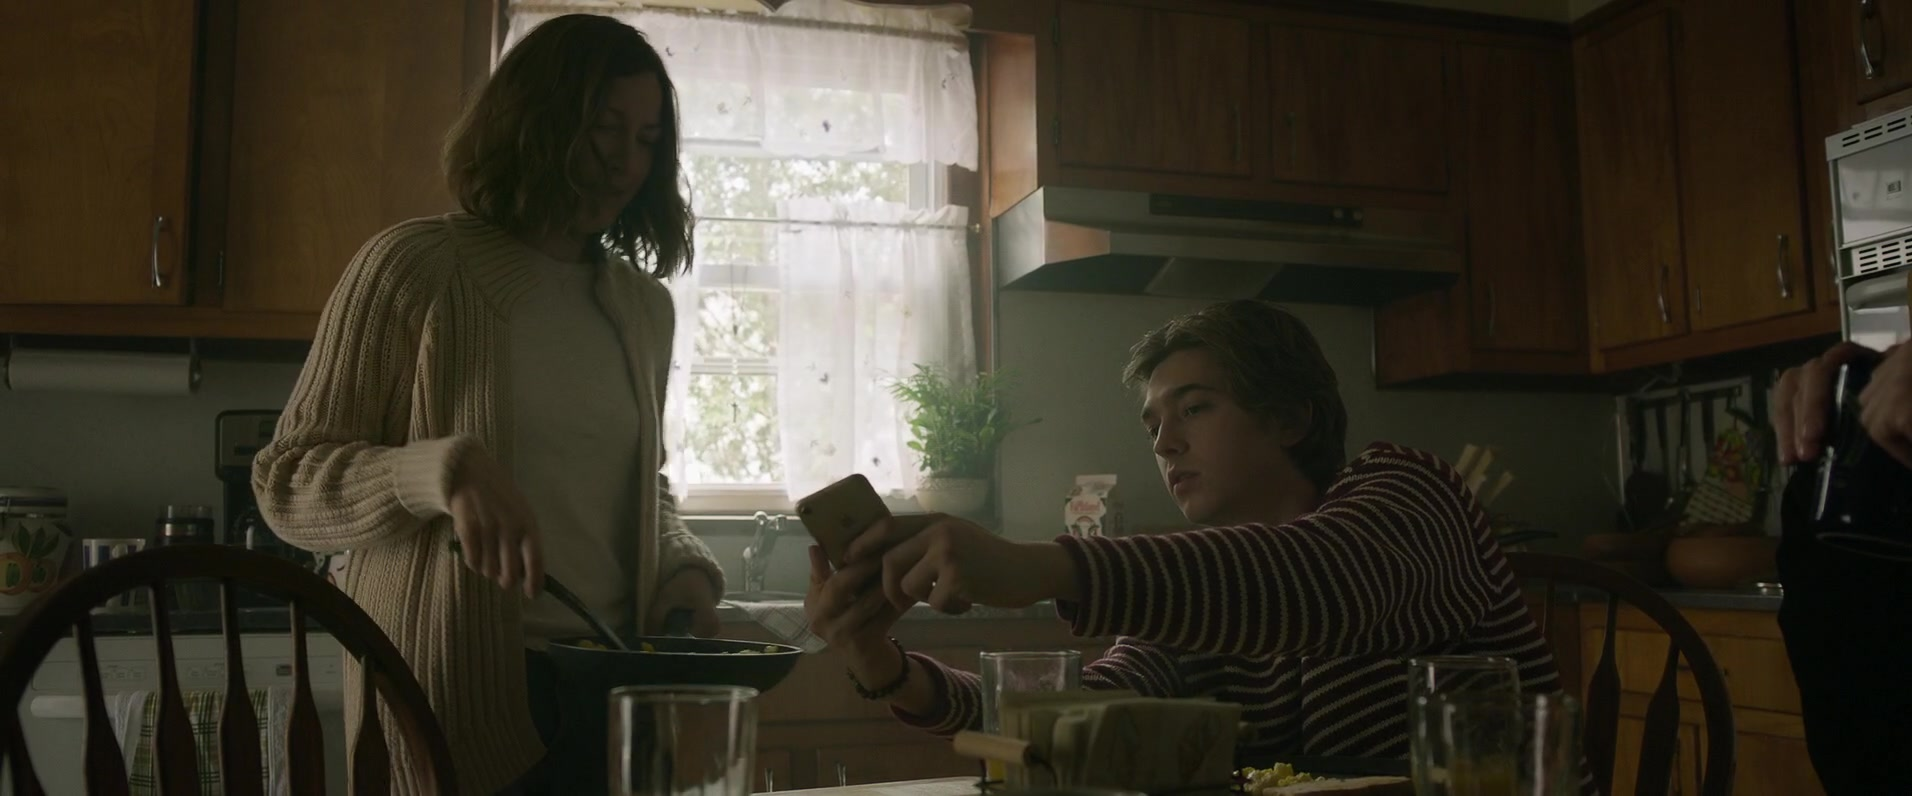 Apple iPhone Used by Bubba Weiler in Puzzle (2018) Movie